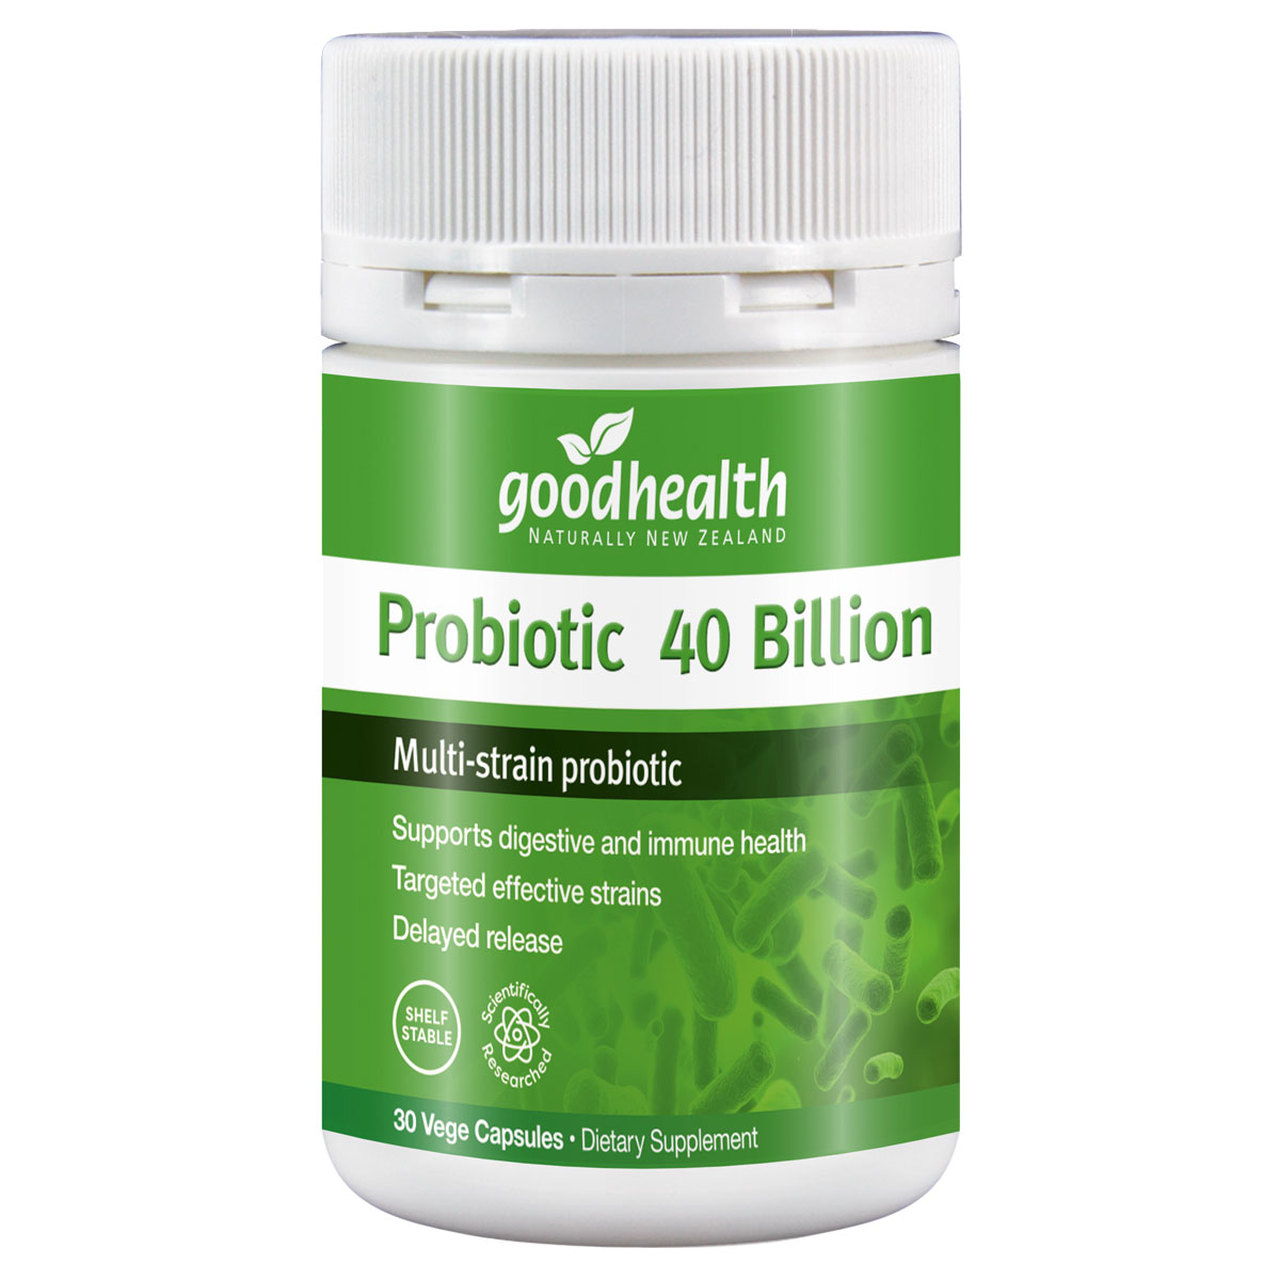 Good Health Probiotic 40 Billion 30 caps